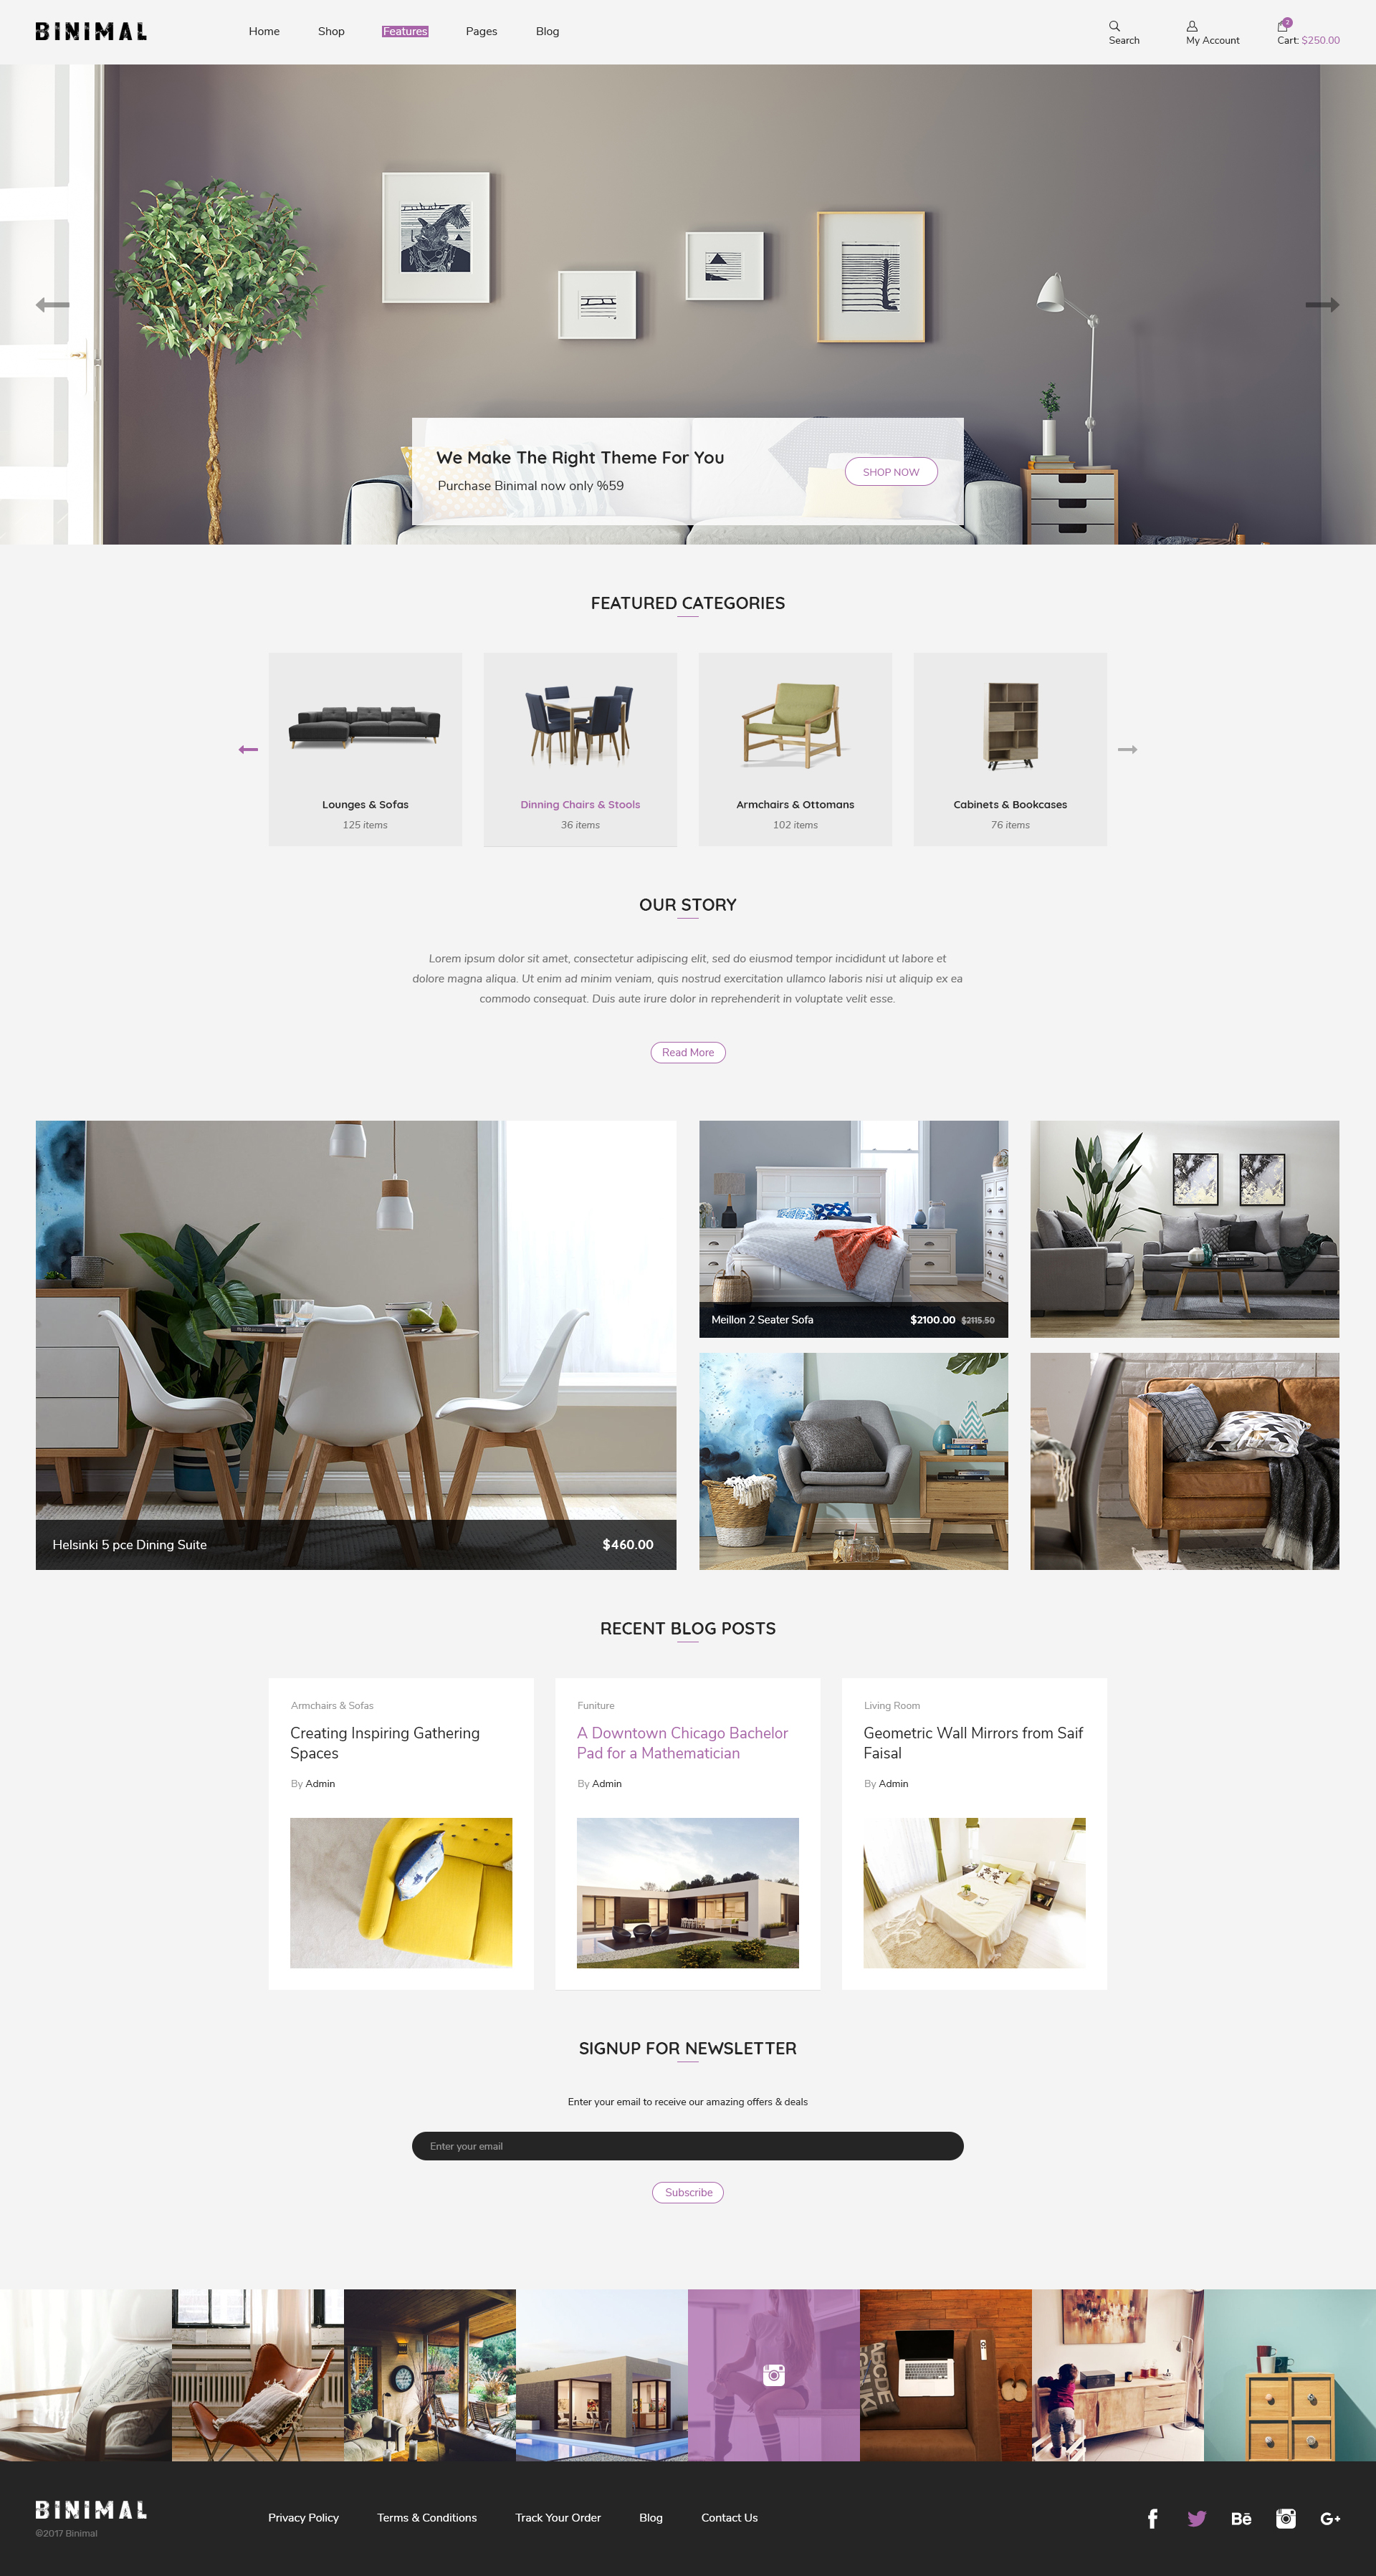 Binimal minimalist ecommerce psd template by vianko for Minimalist homepage